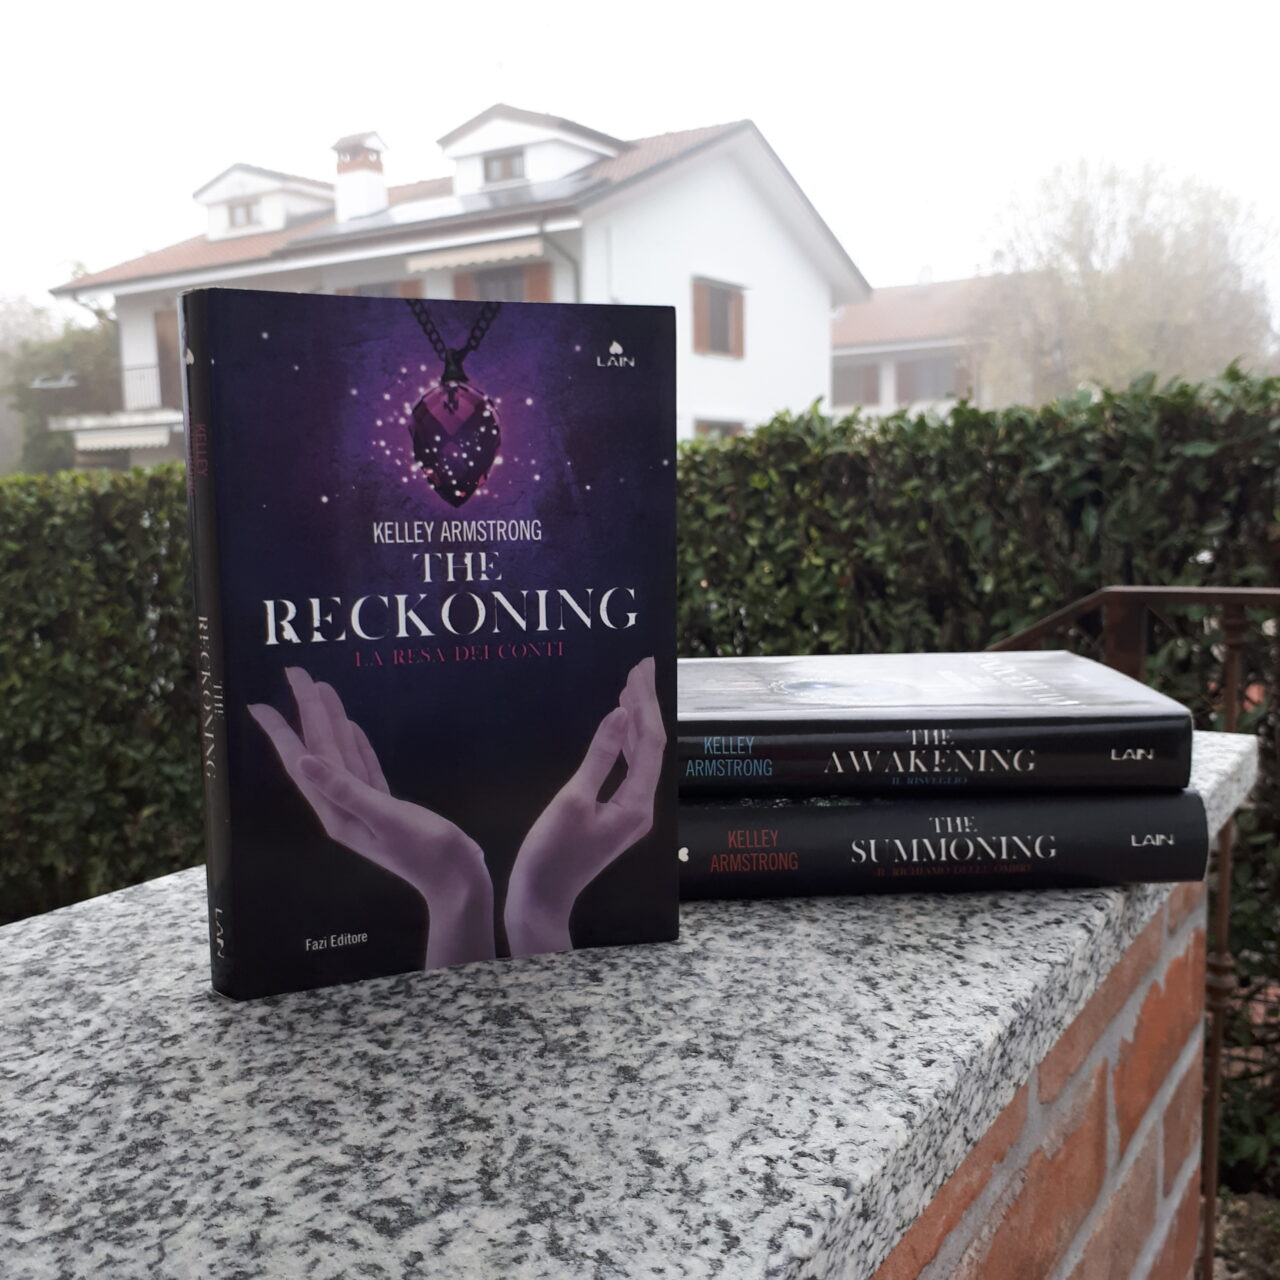 The reckoning – La resa dei conti